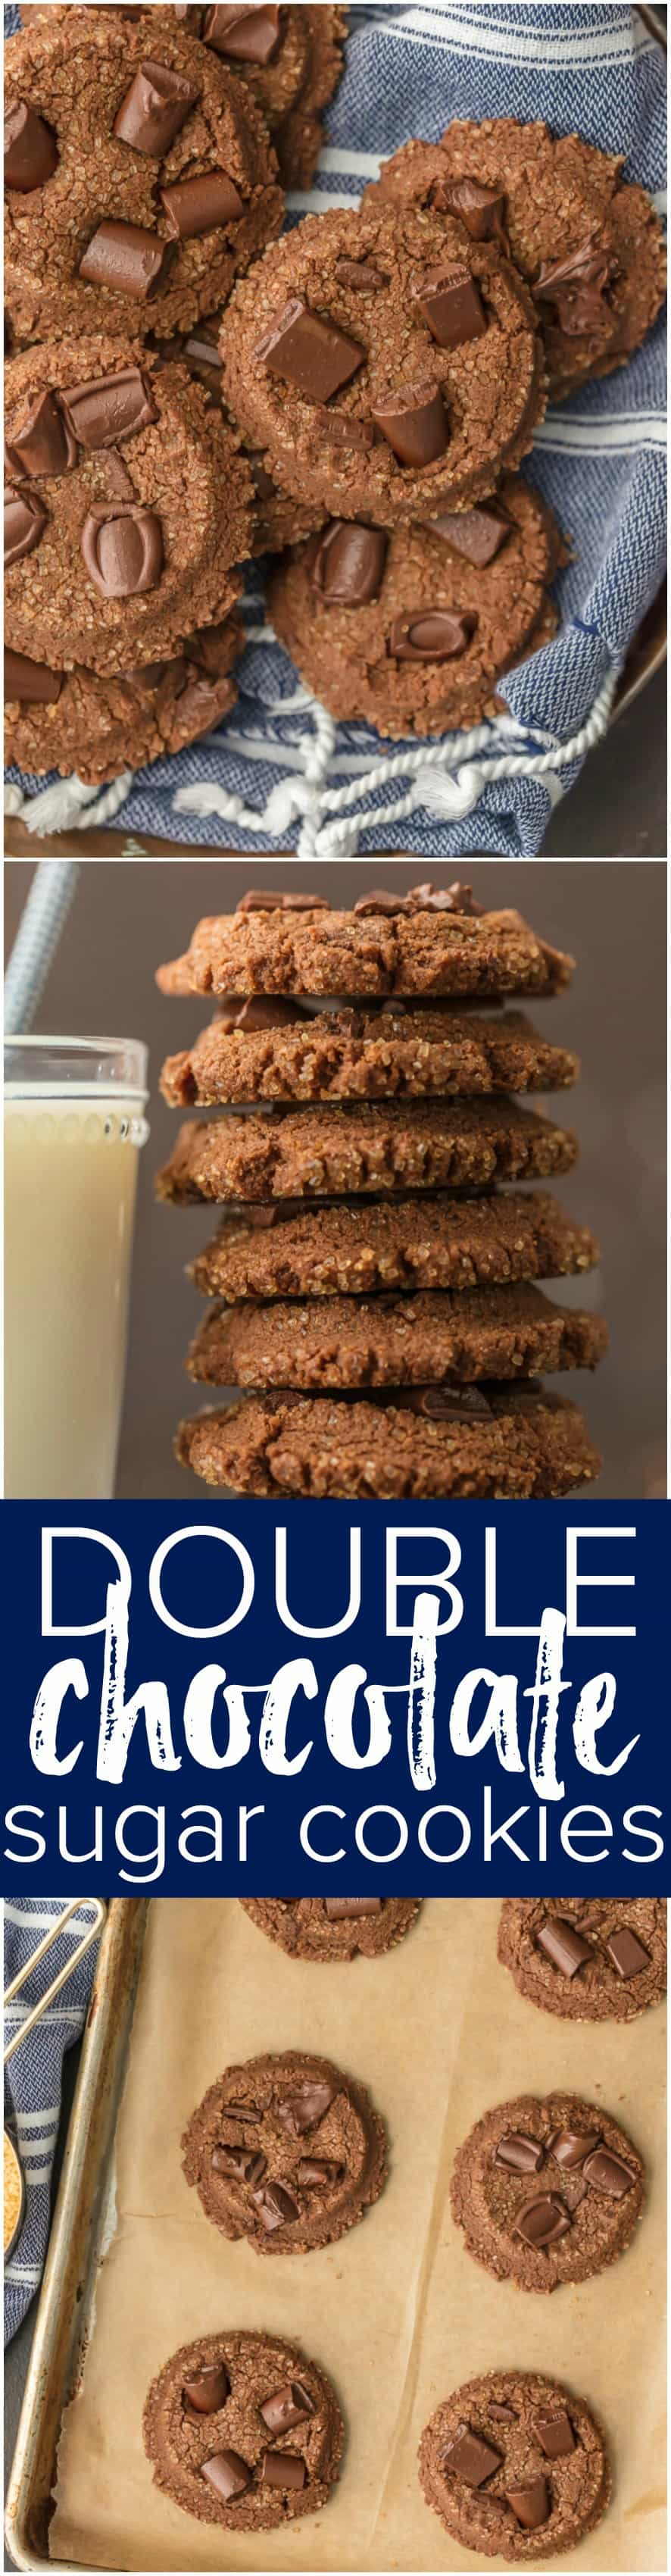 These FLUFFY DOUBLE CHOCOLATE SUGAR COOKIES are to die for. Baking the perfect Christmas cookie has never been so easy. The more chocolate chunks the better!